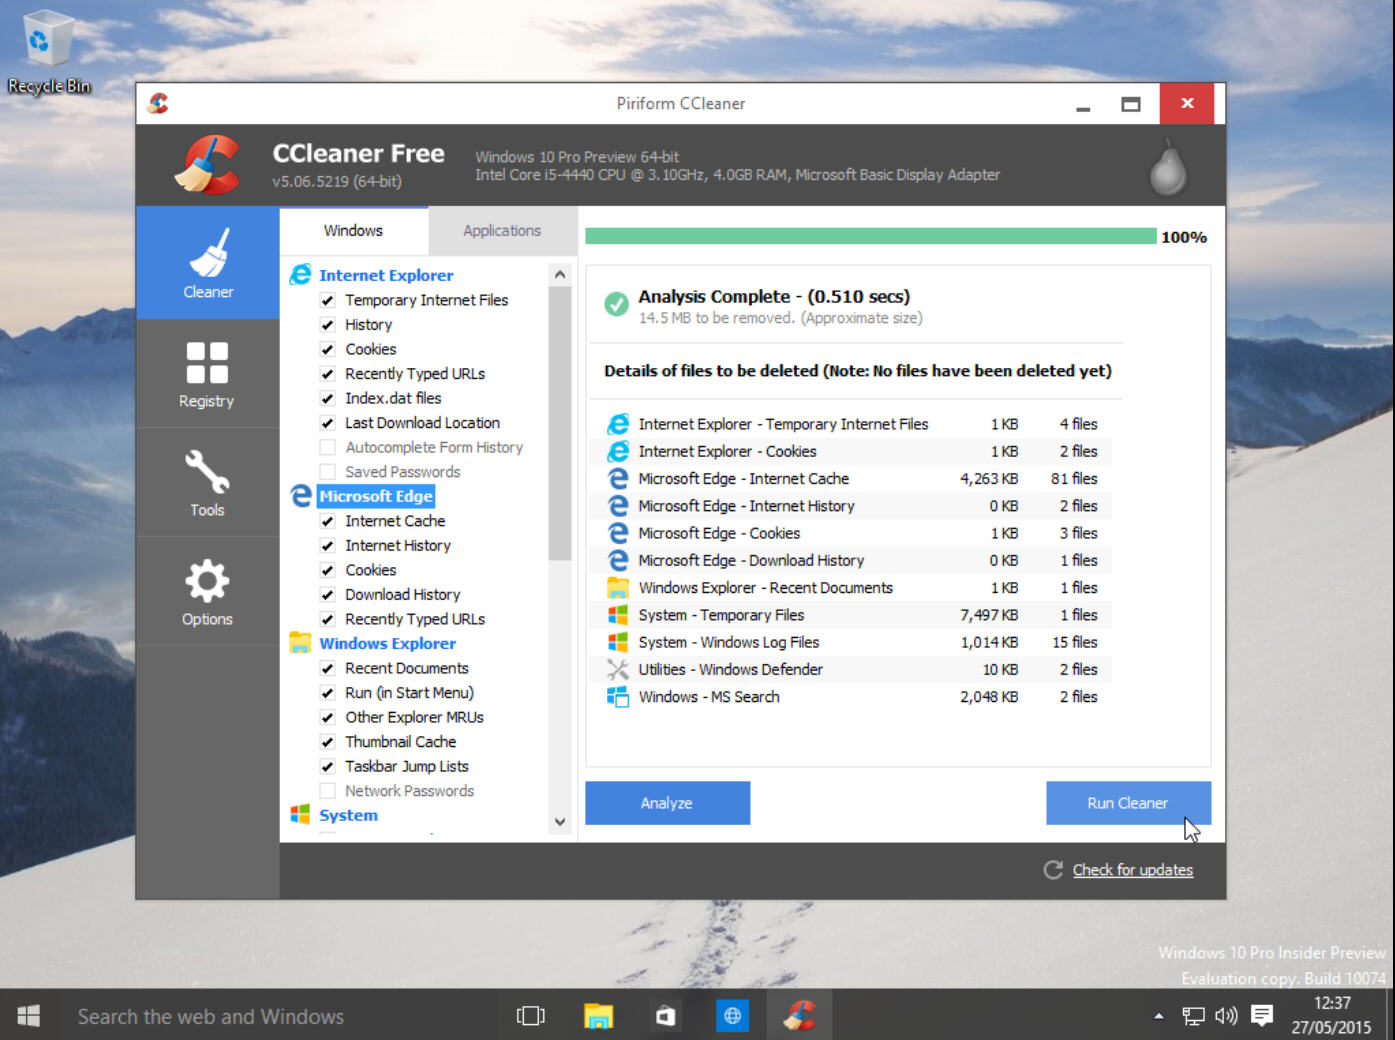 Ccleaner Can Now Clean Microsoft Edge And Ie12 Browsers